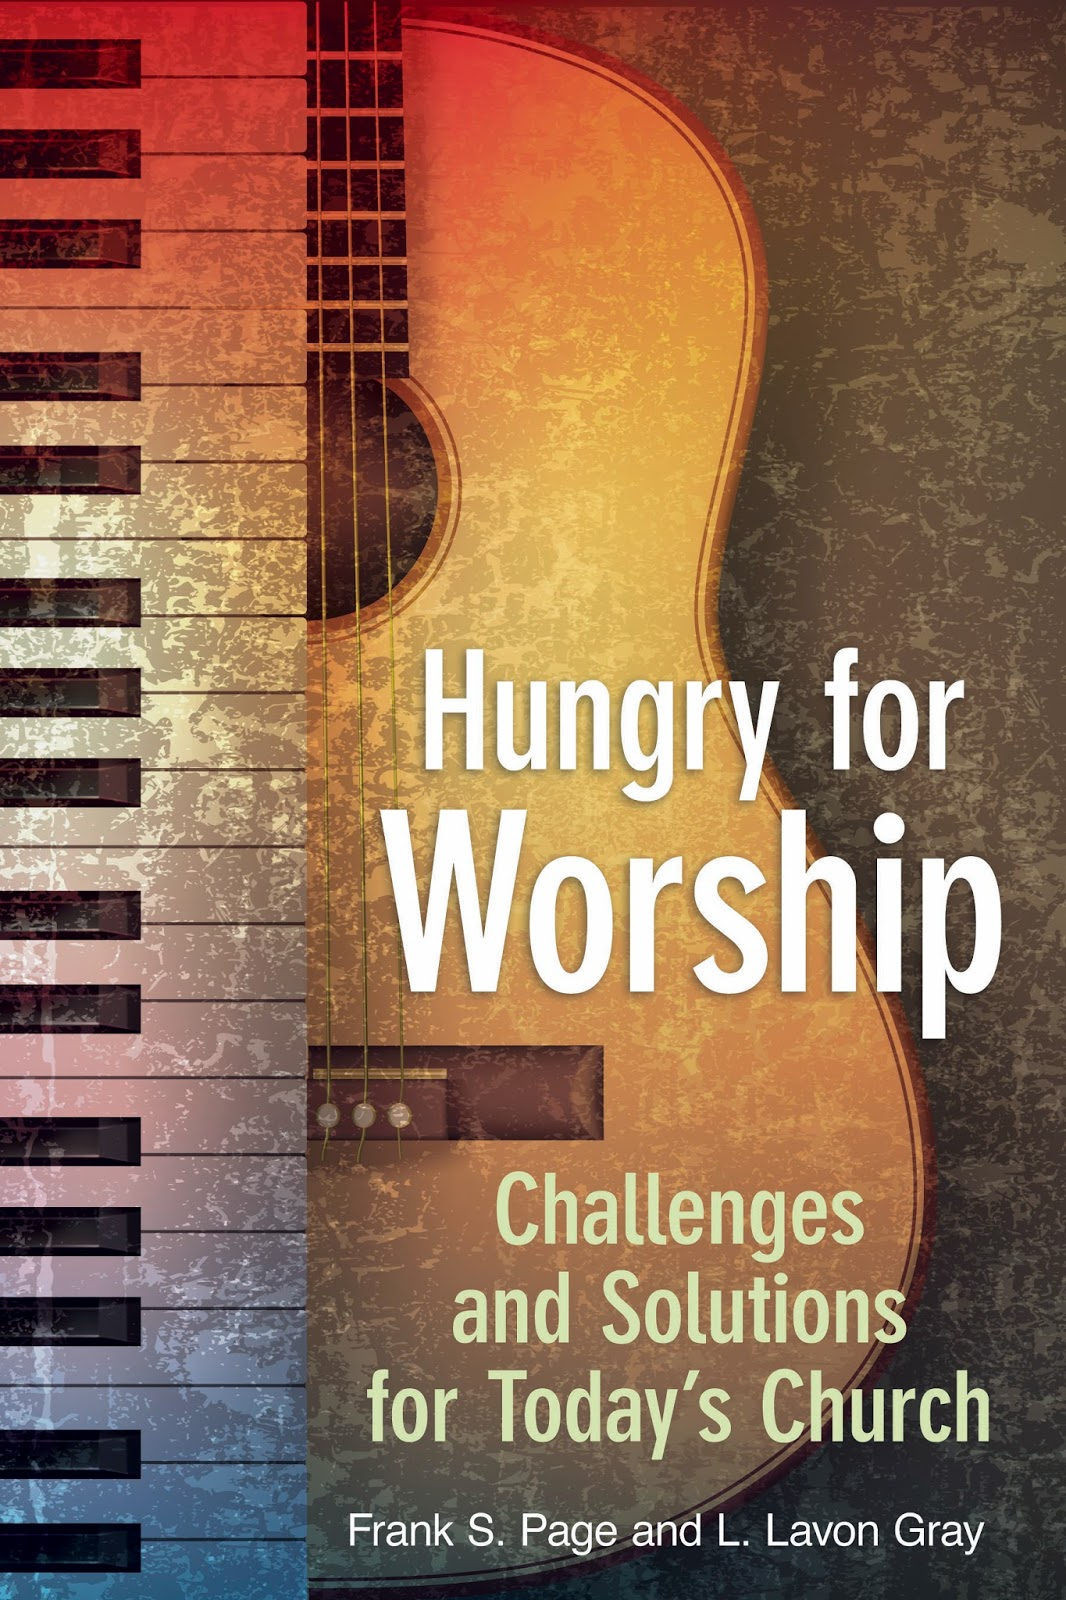 http://www.amazon.com/Hungry-Worship-Challenges-Solutions-Todays/dp/1596694076